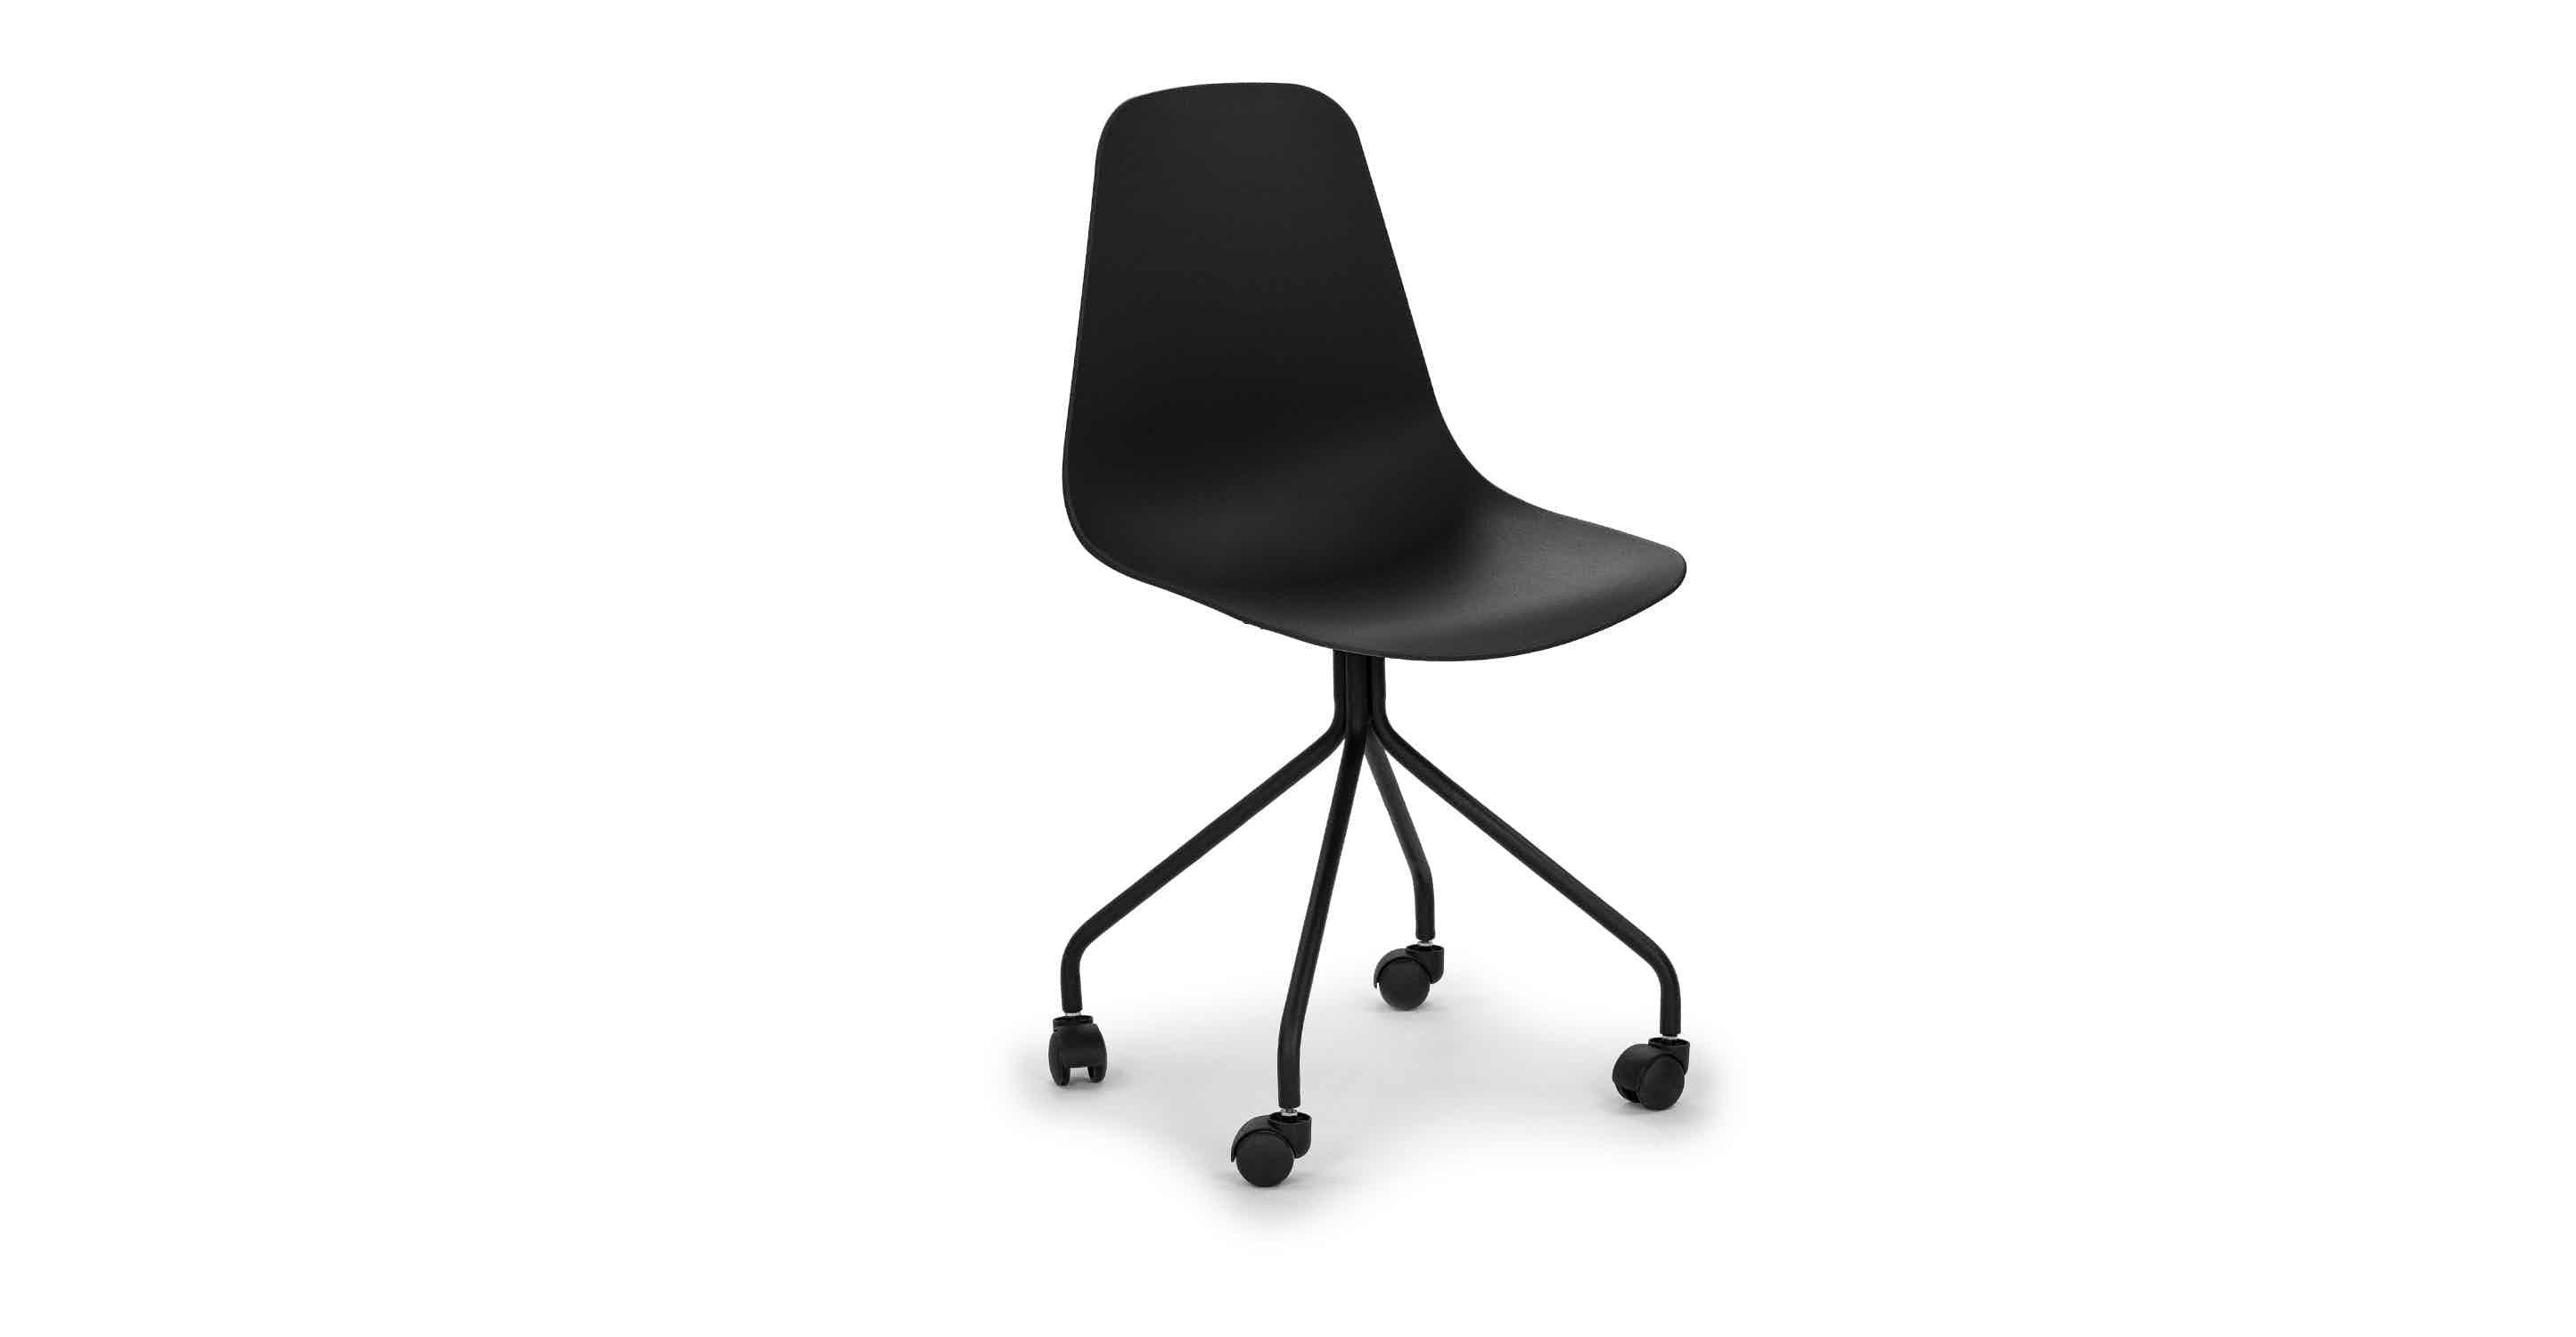 Svelti Pure Black Office Chair With Images Black Office Chair Modern Office Chair Contemporary Office Chairs